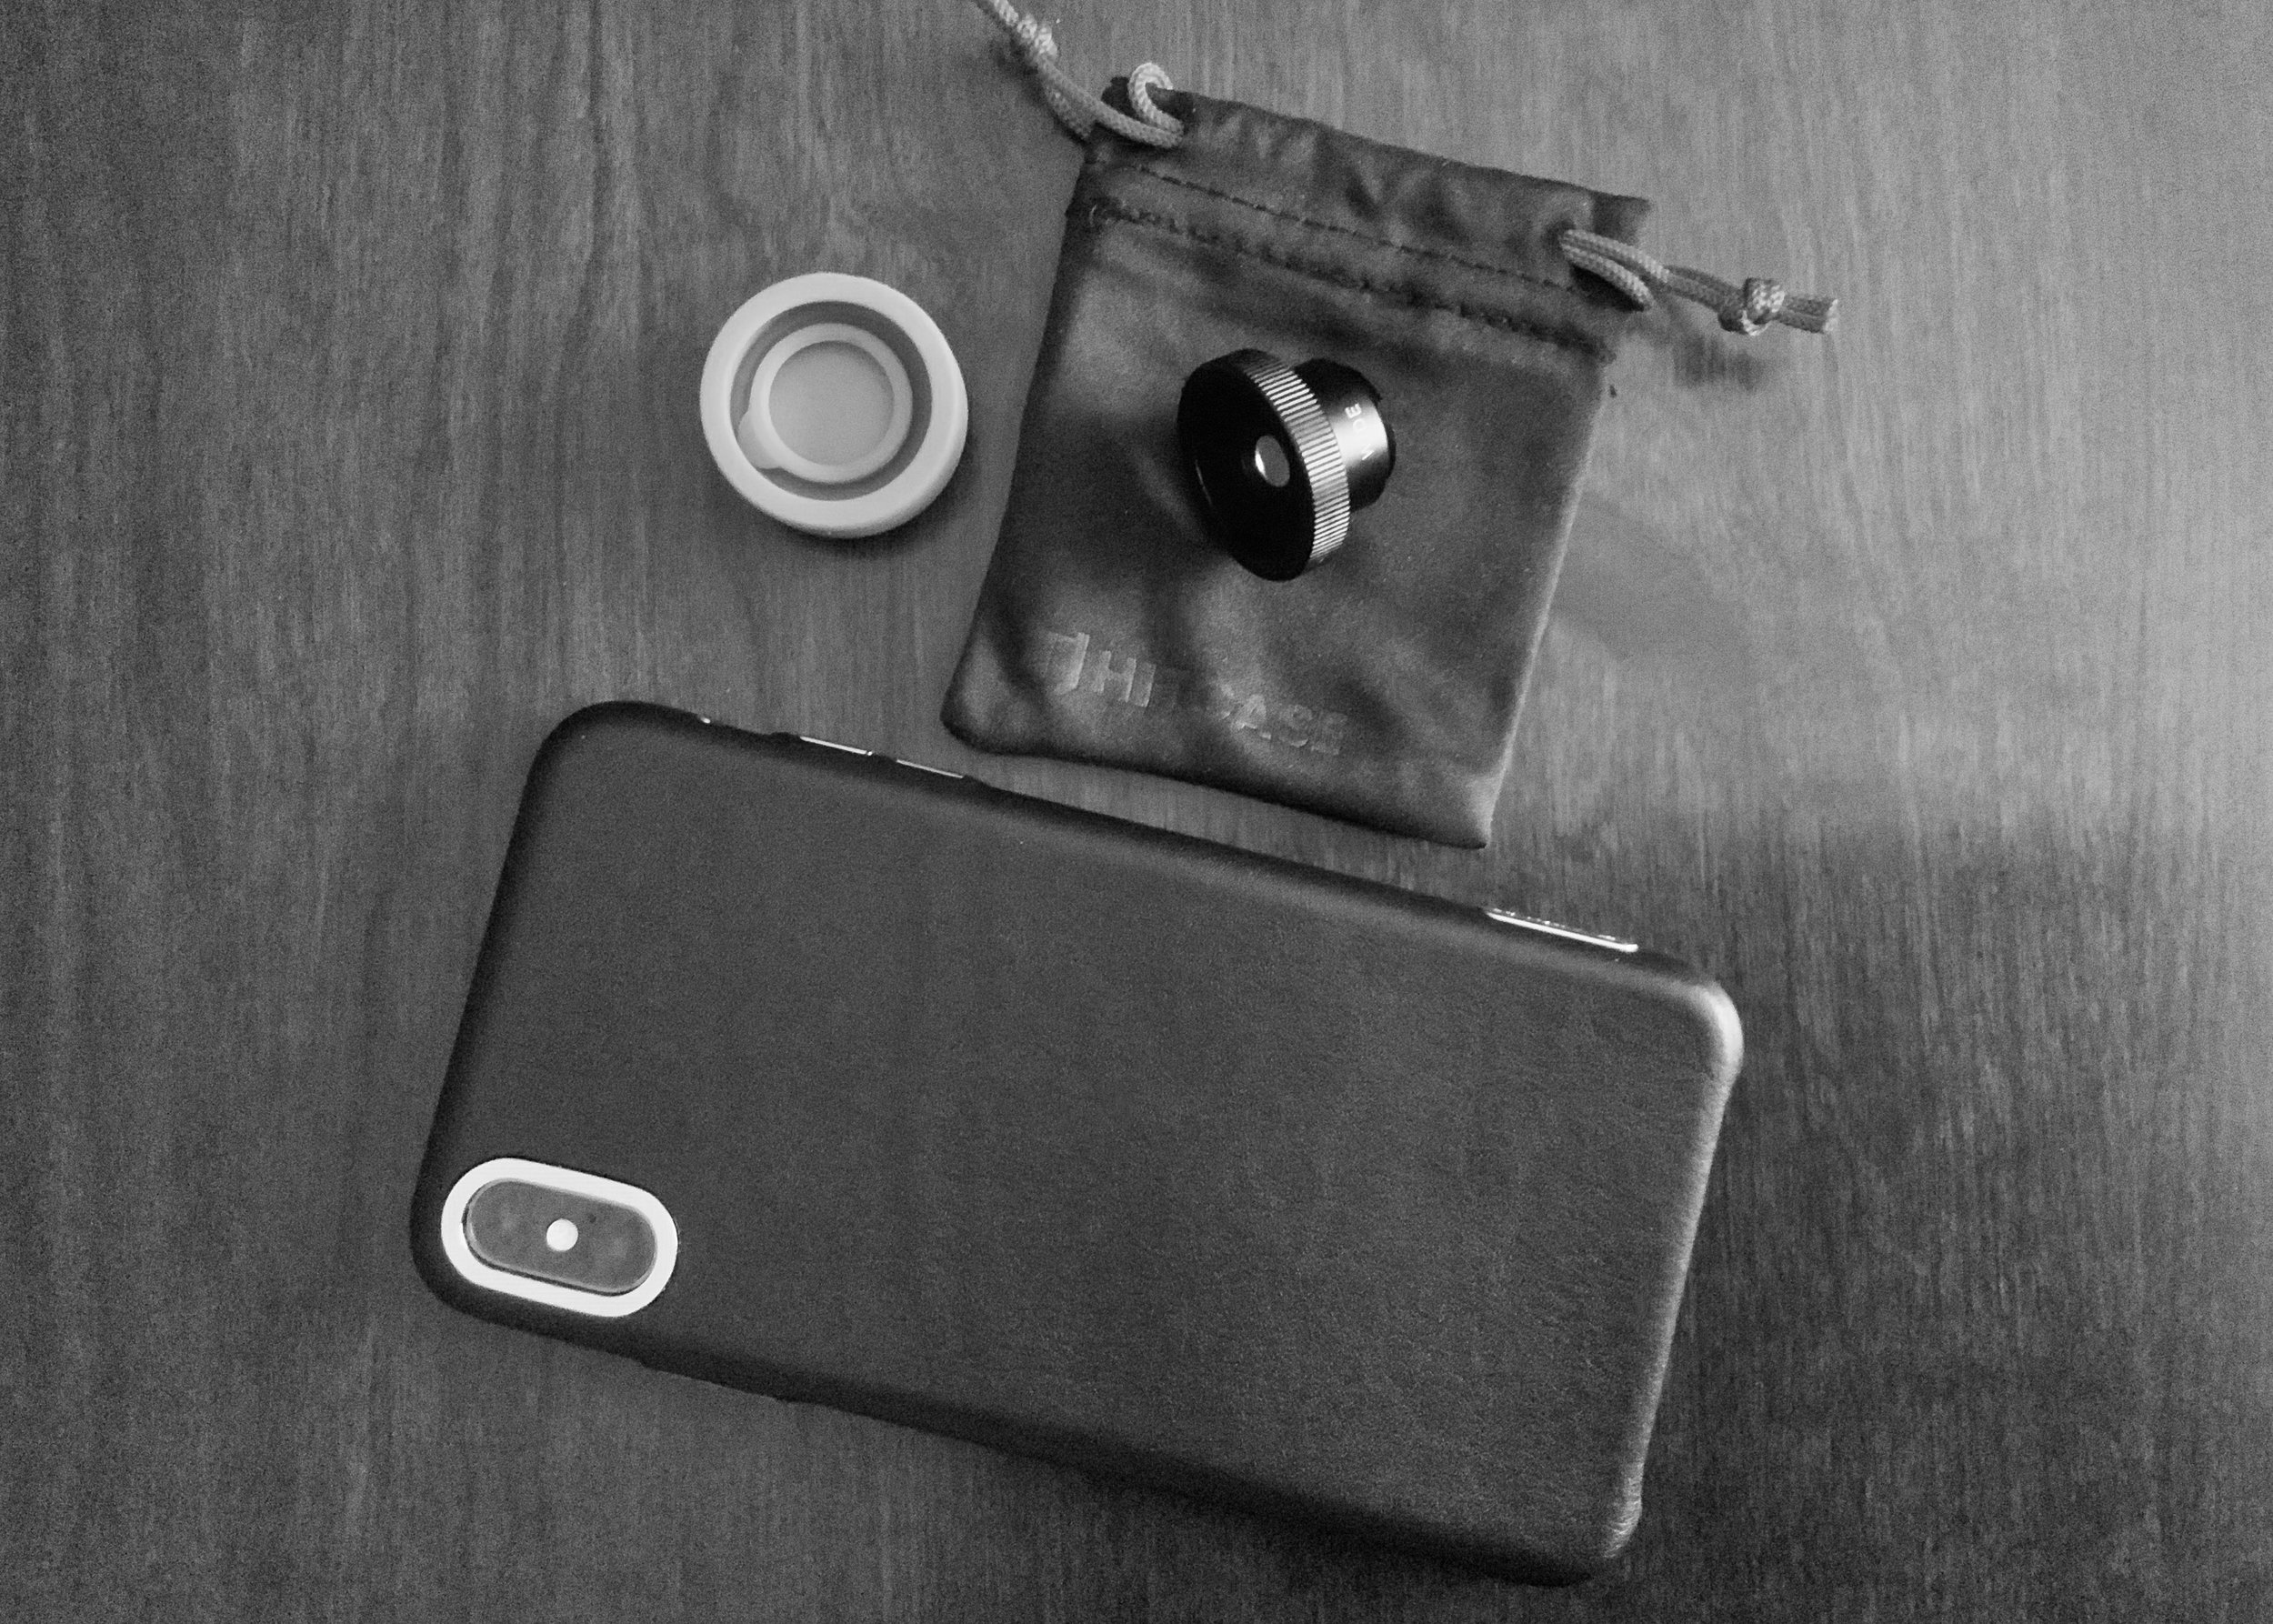 Hitcase Ferra case (in black leather) and TrueLUX Wide Lens.